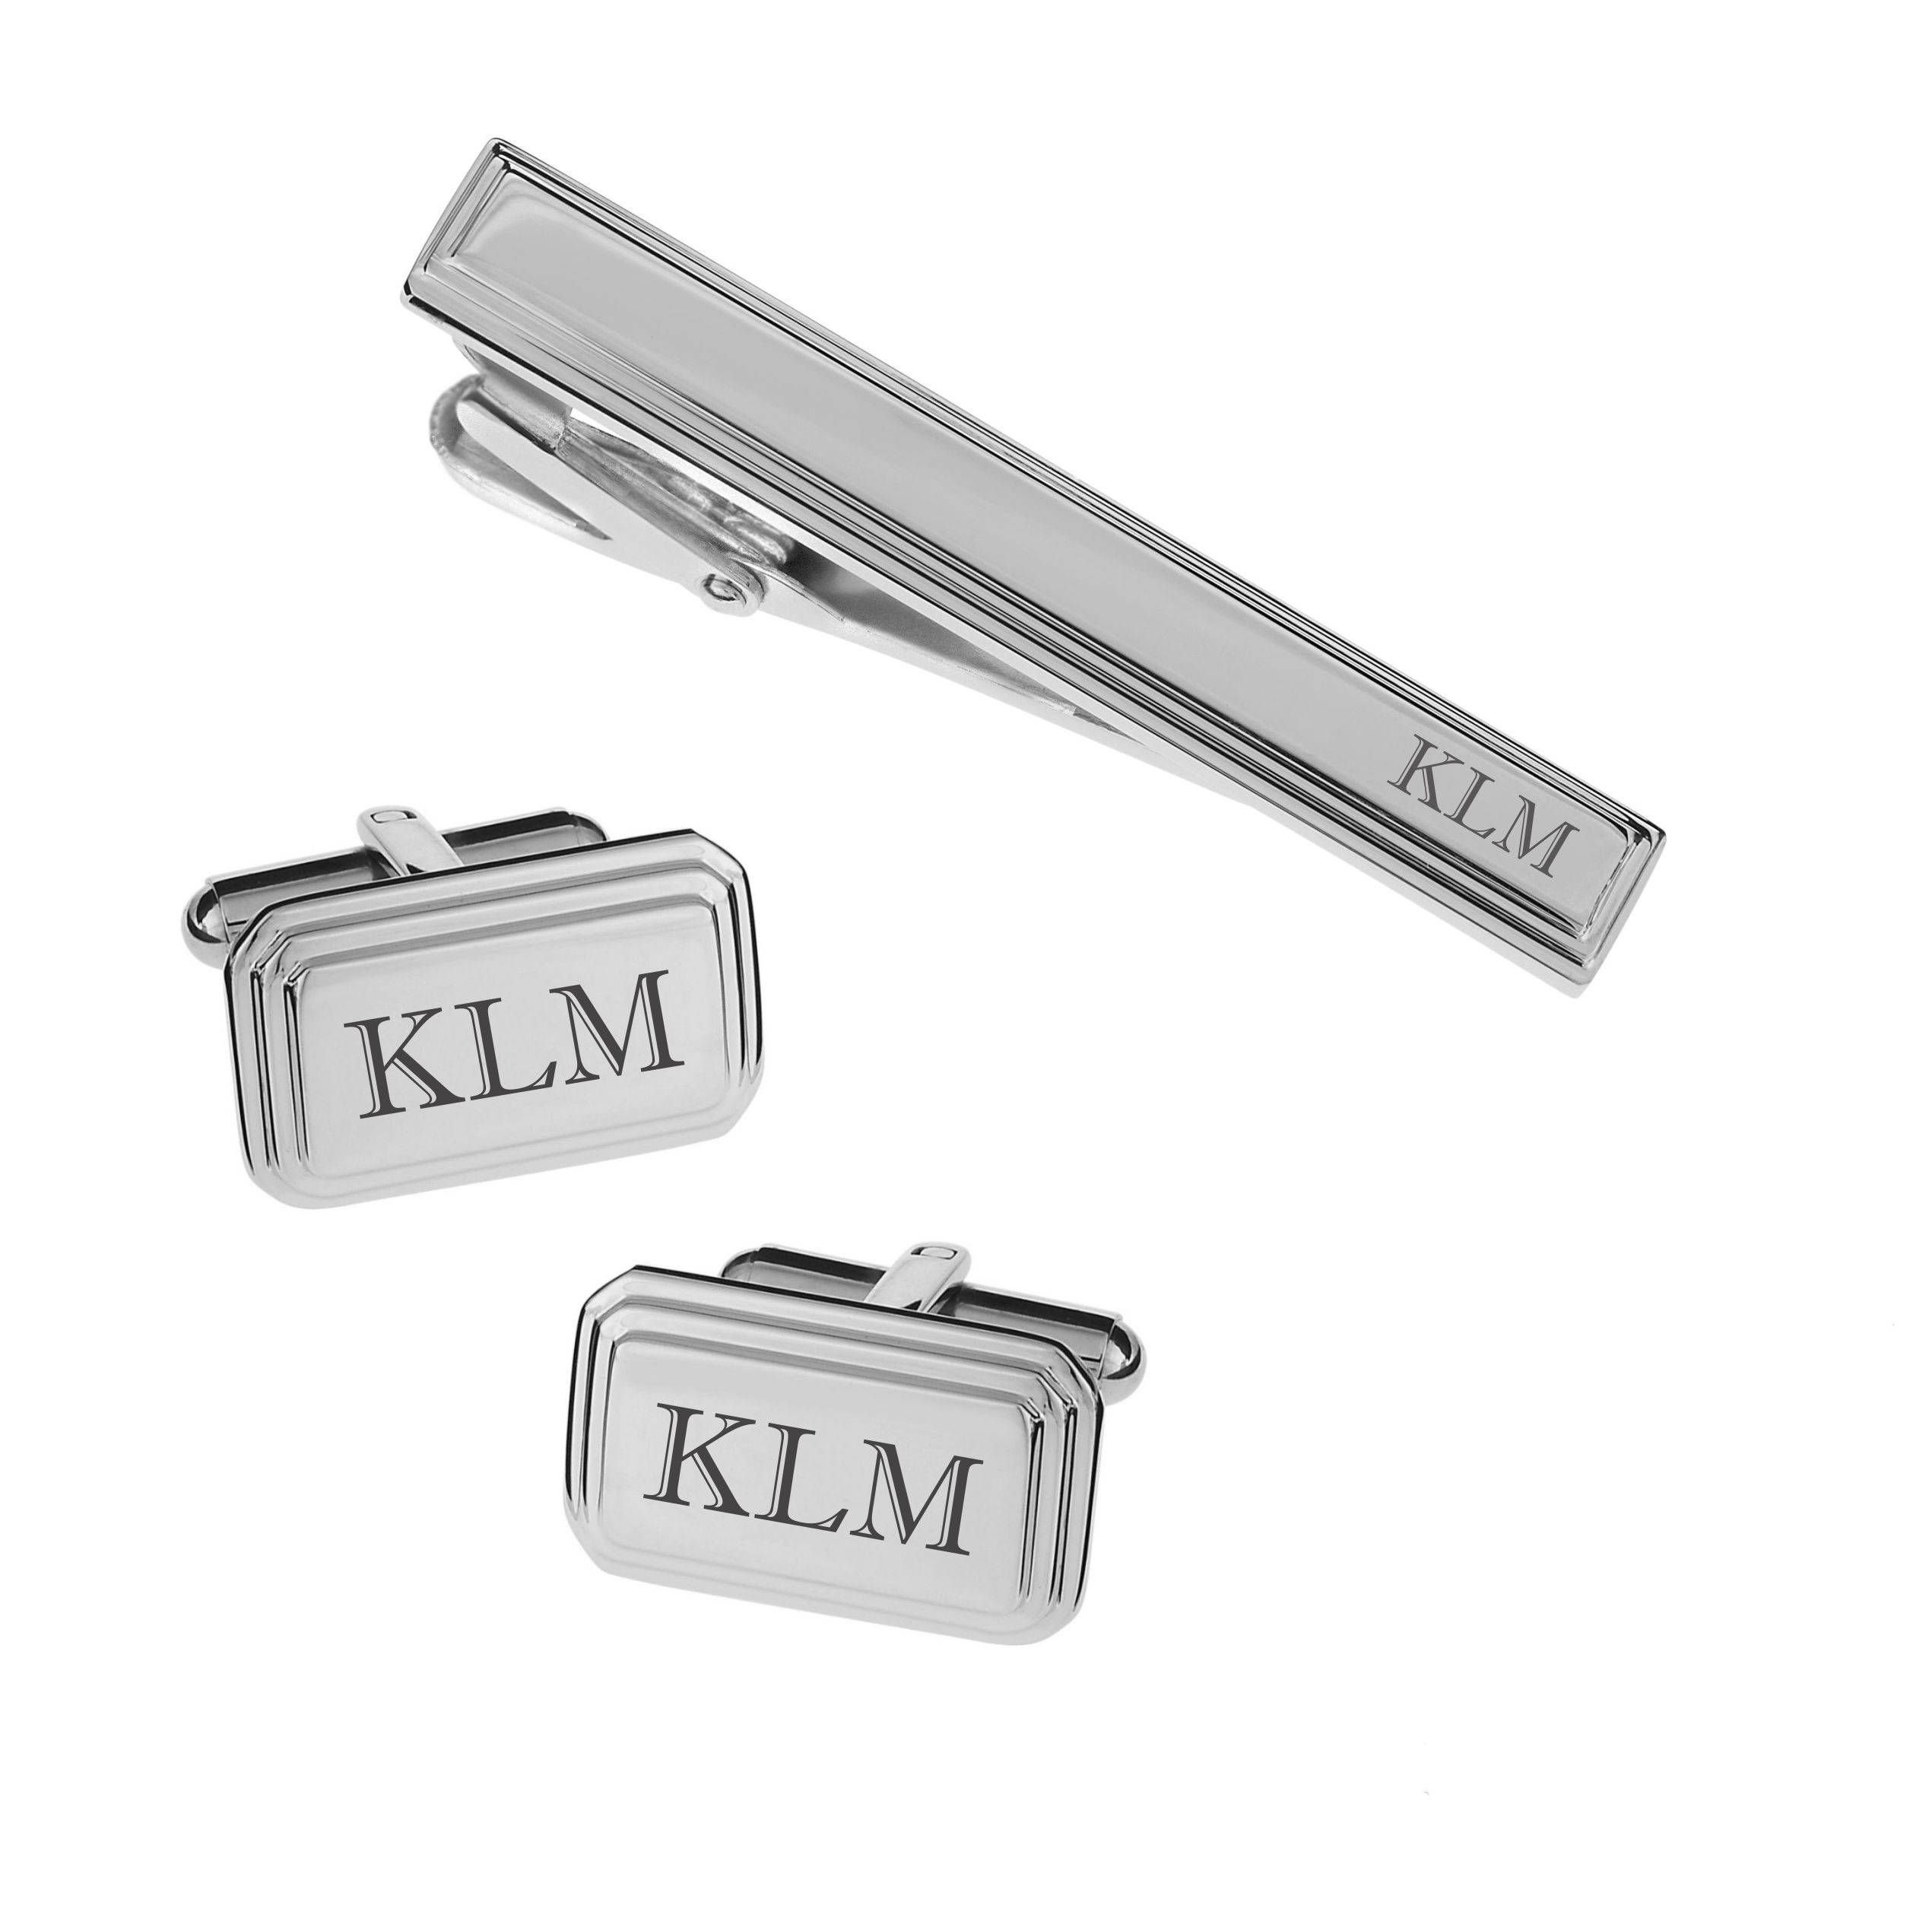 Personalized High Polished Silver Beveled Stainless Steel Cufflinks & Tie Clip Set Engraved Free